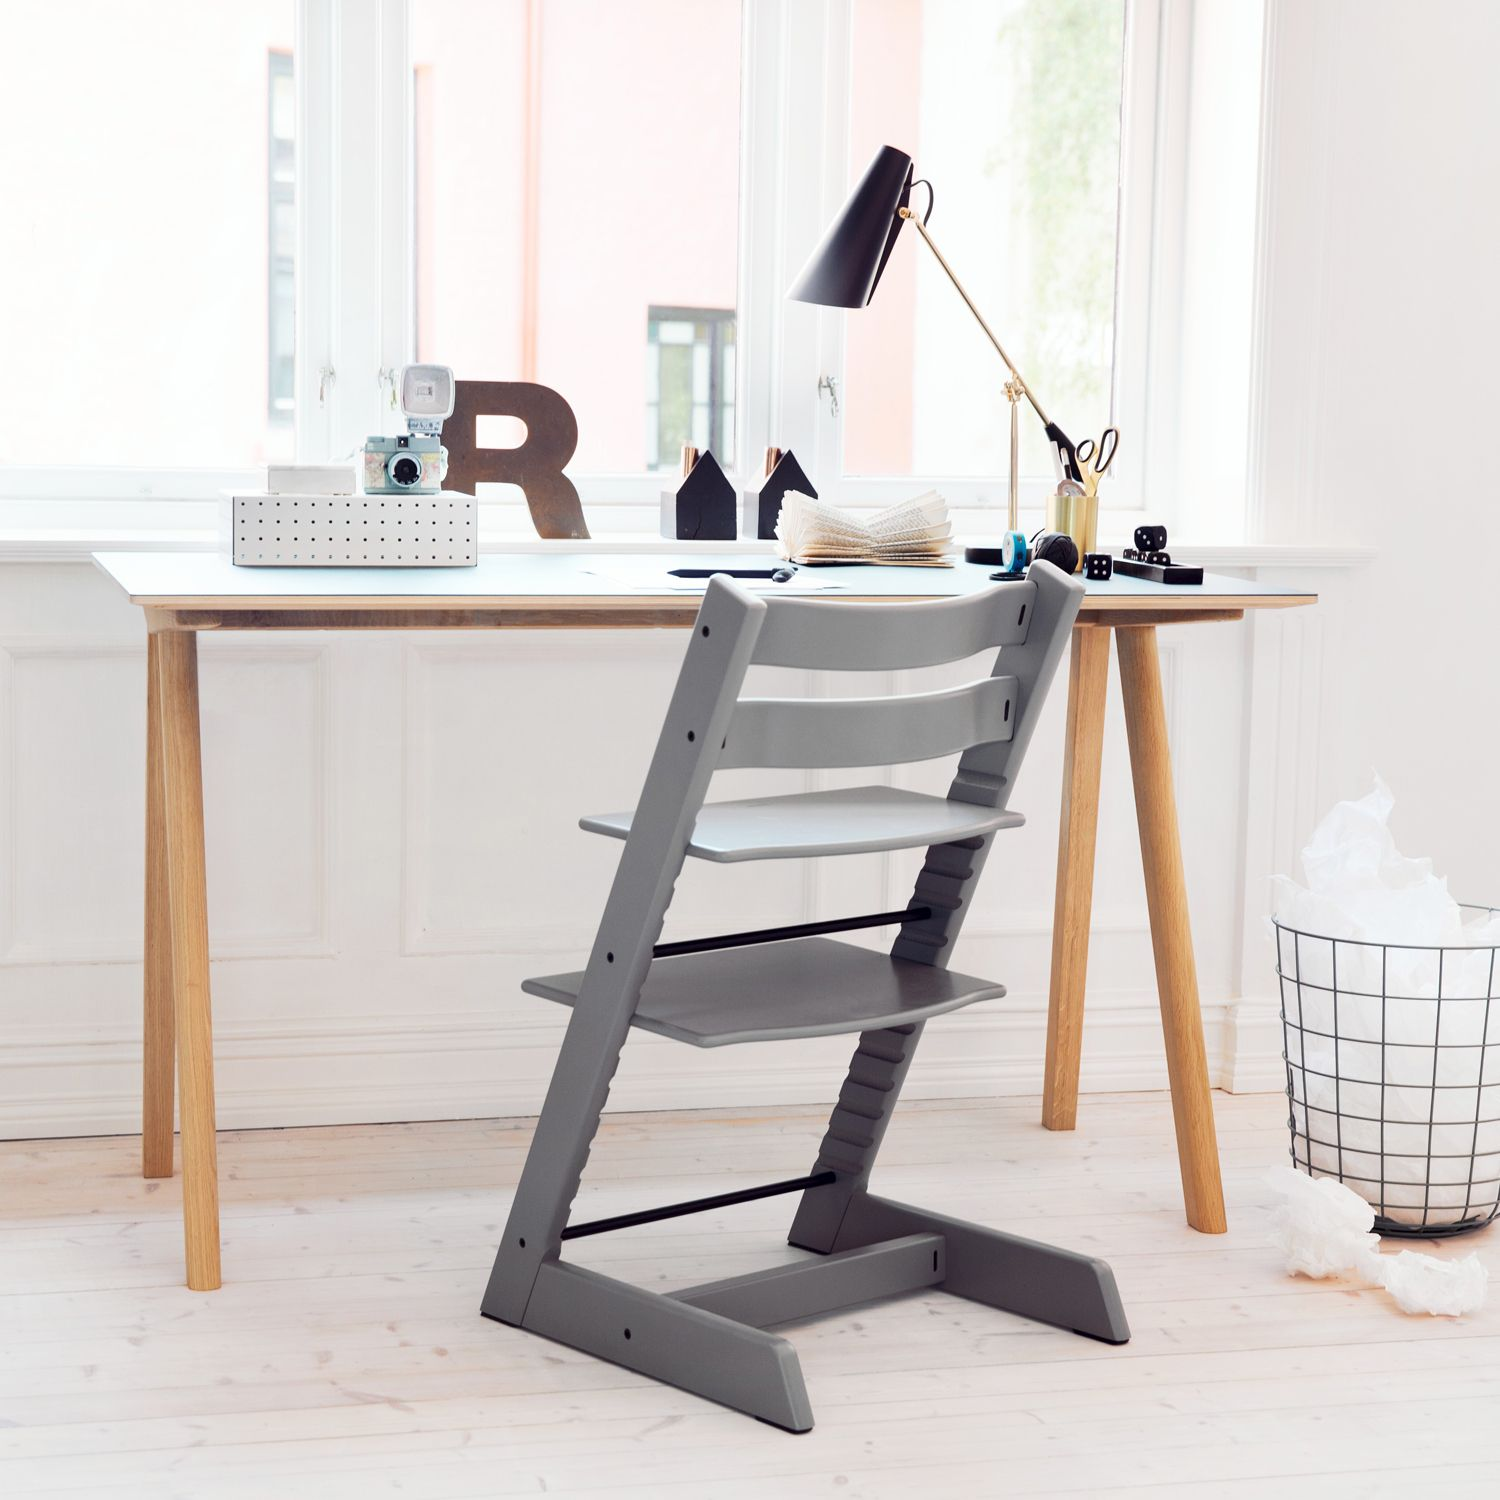 stokke tripp trapp chair in storm grey the chair that. Black Bedroom Furniture Sets. Home Design Ideas